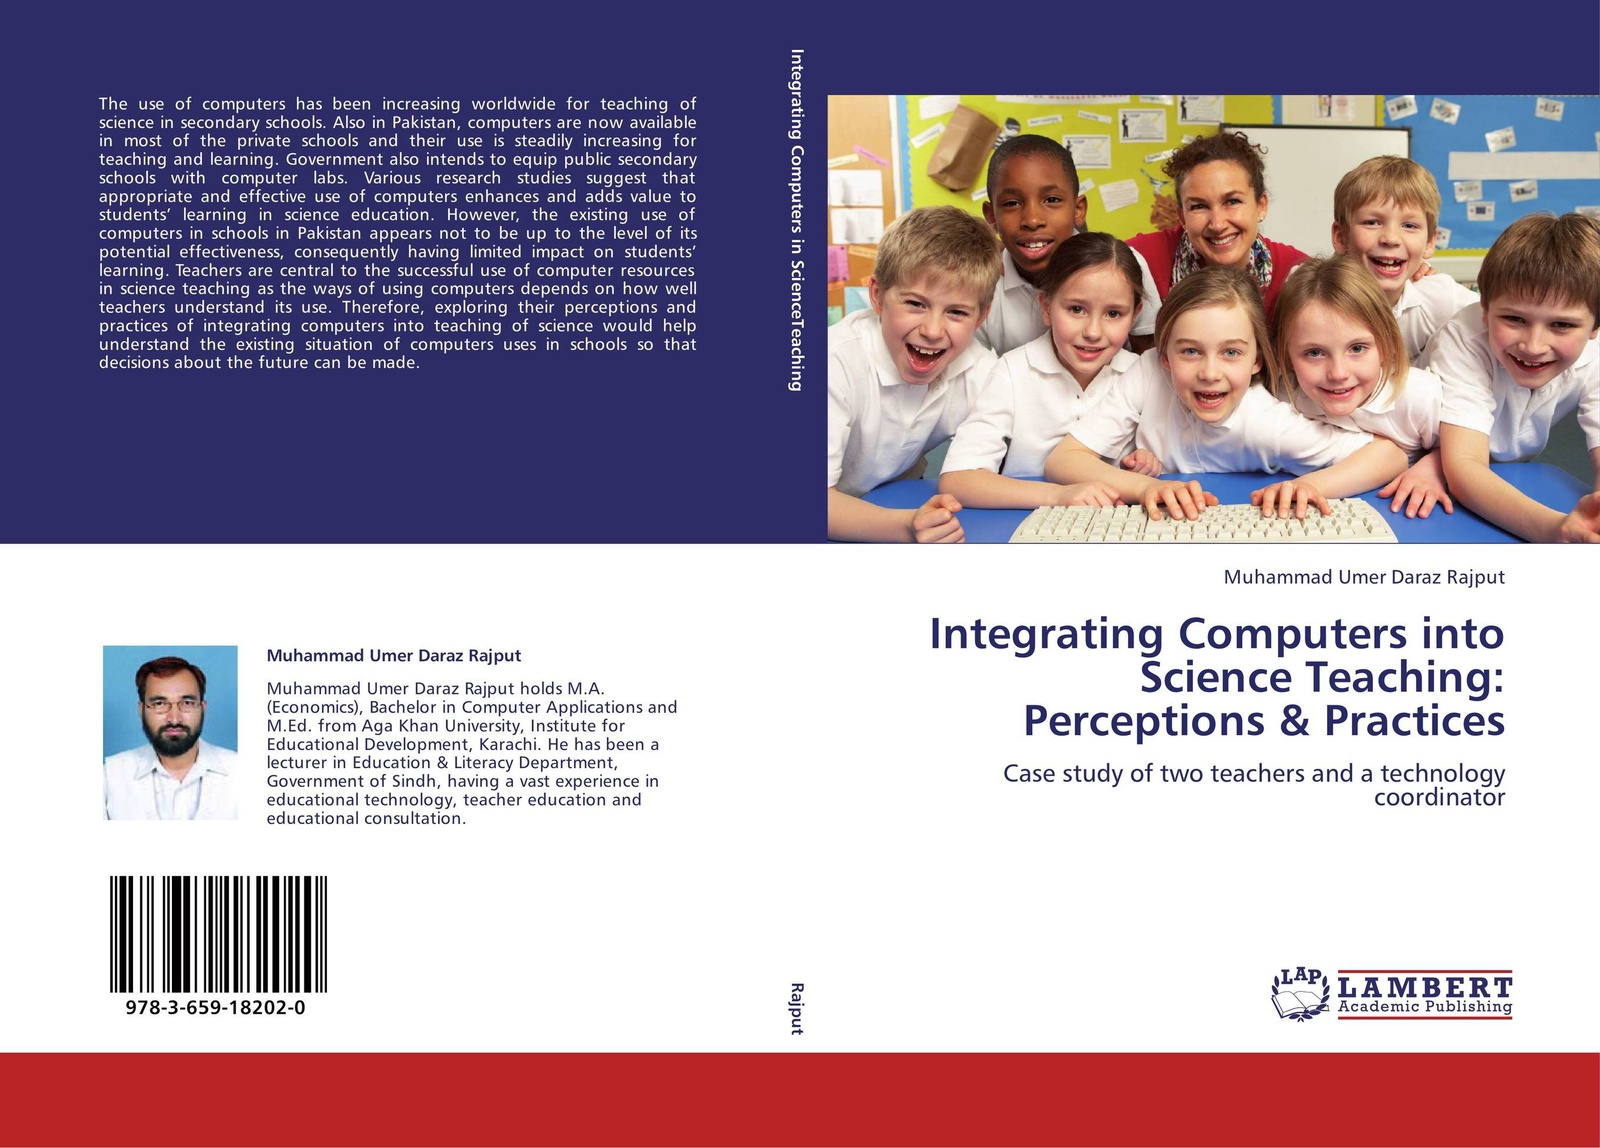 Muhammad Umer Daraz Rajput Integrating Computers into Science Teaching: Perceptions & Practices mohamed mbarouk suleiman teachers experiences of teaching science with limited laboratory resources